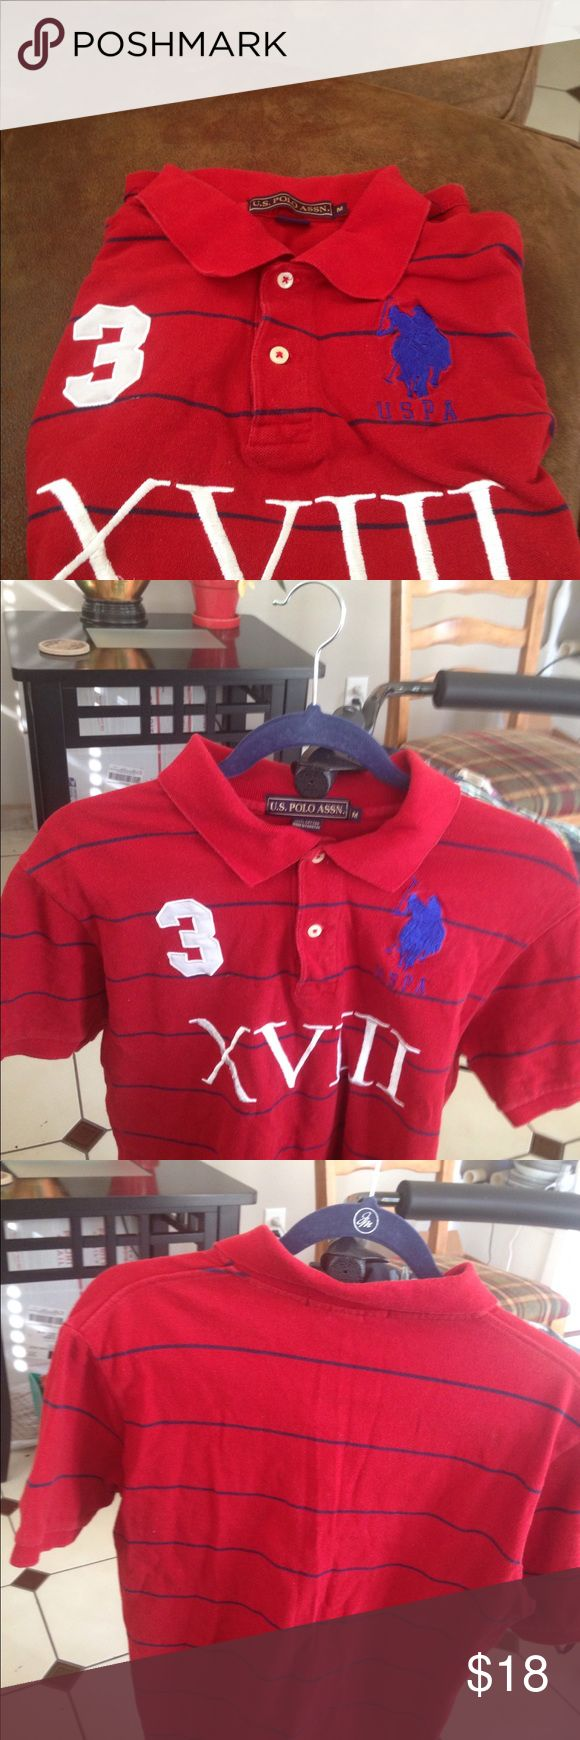 US Polo Assn pullover Red polo pullover, sharp clean short sleeves M U.S. Polo Assn. Shirts Polos